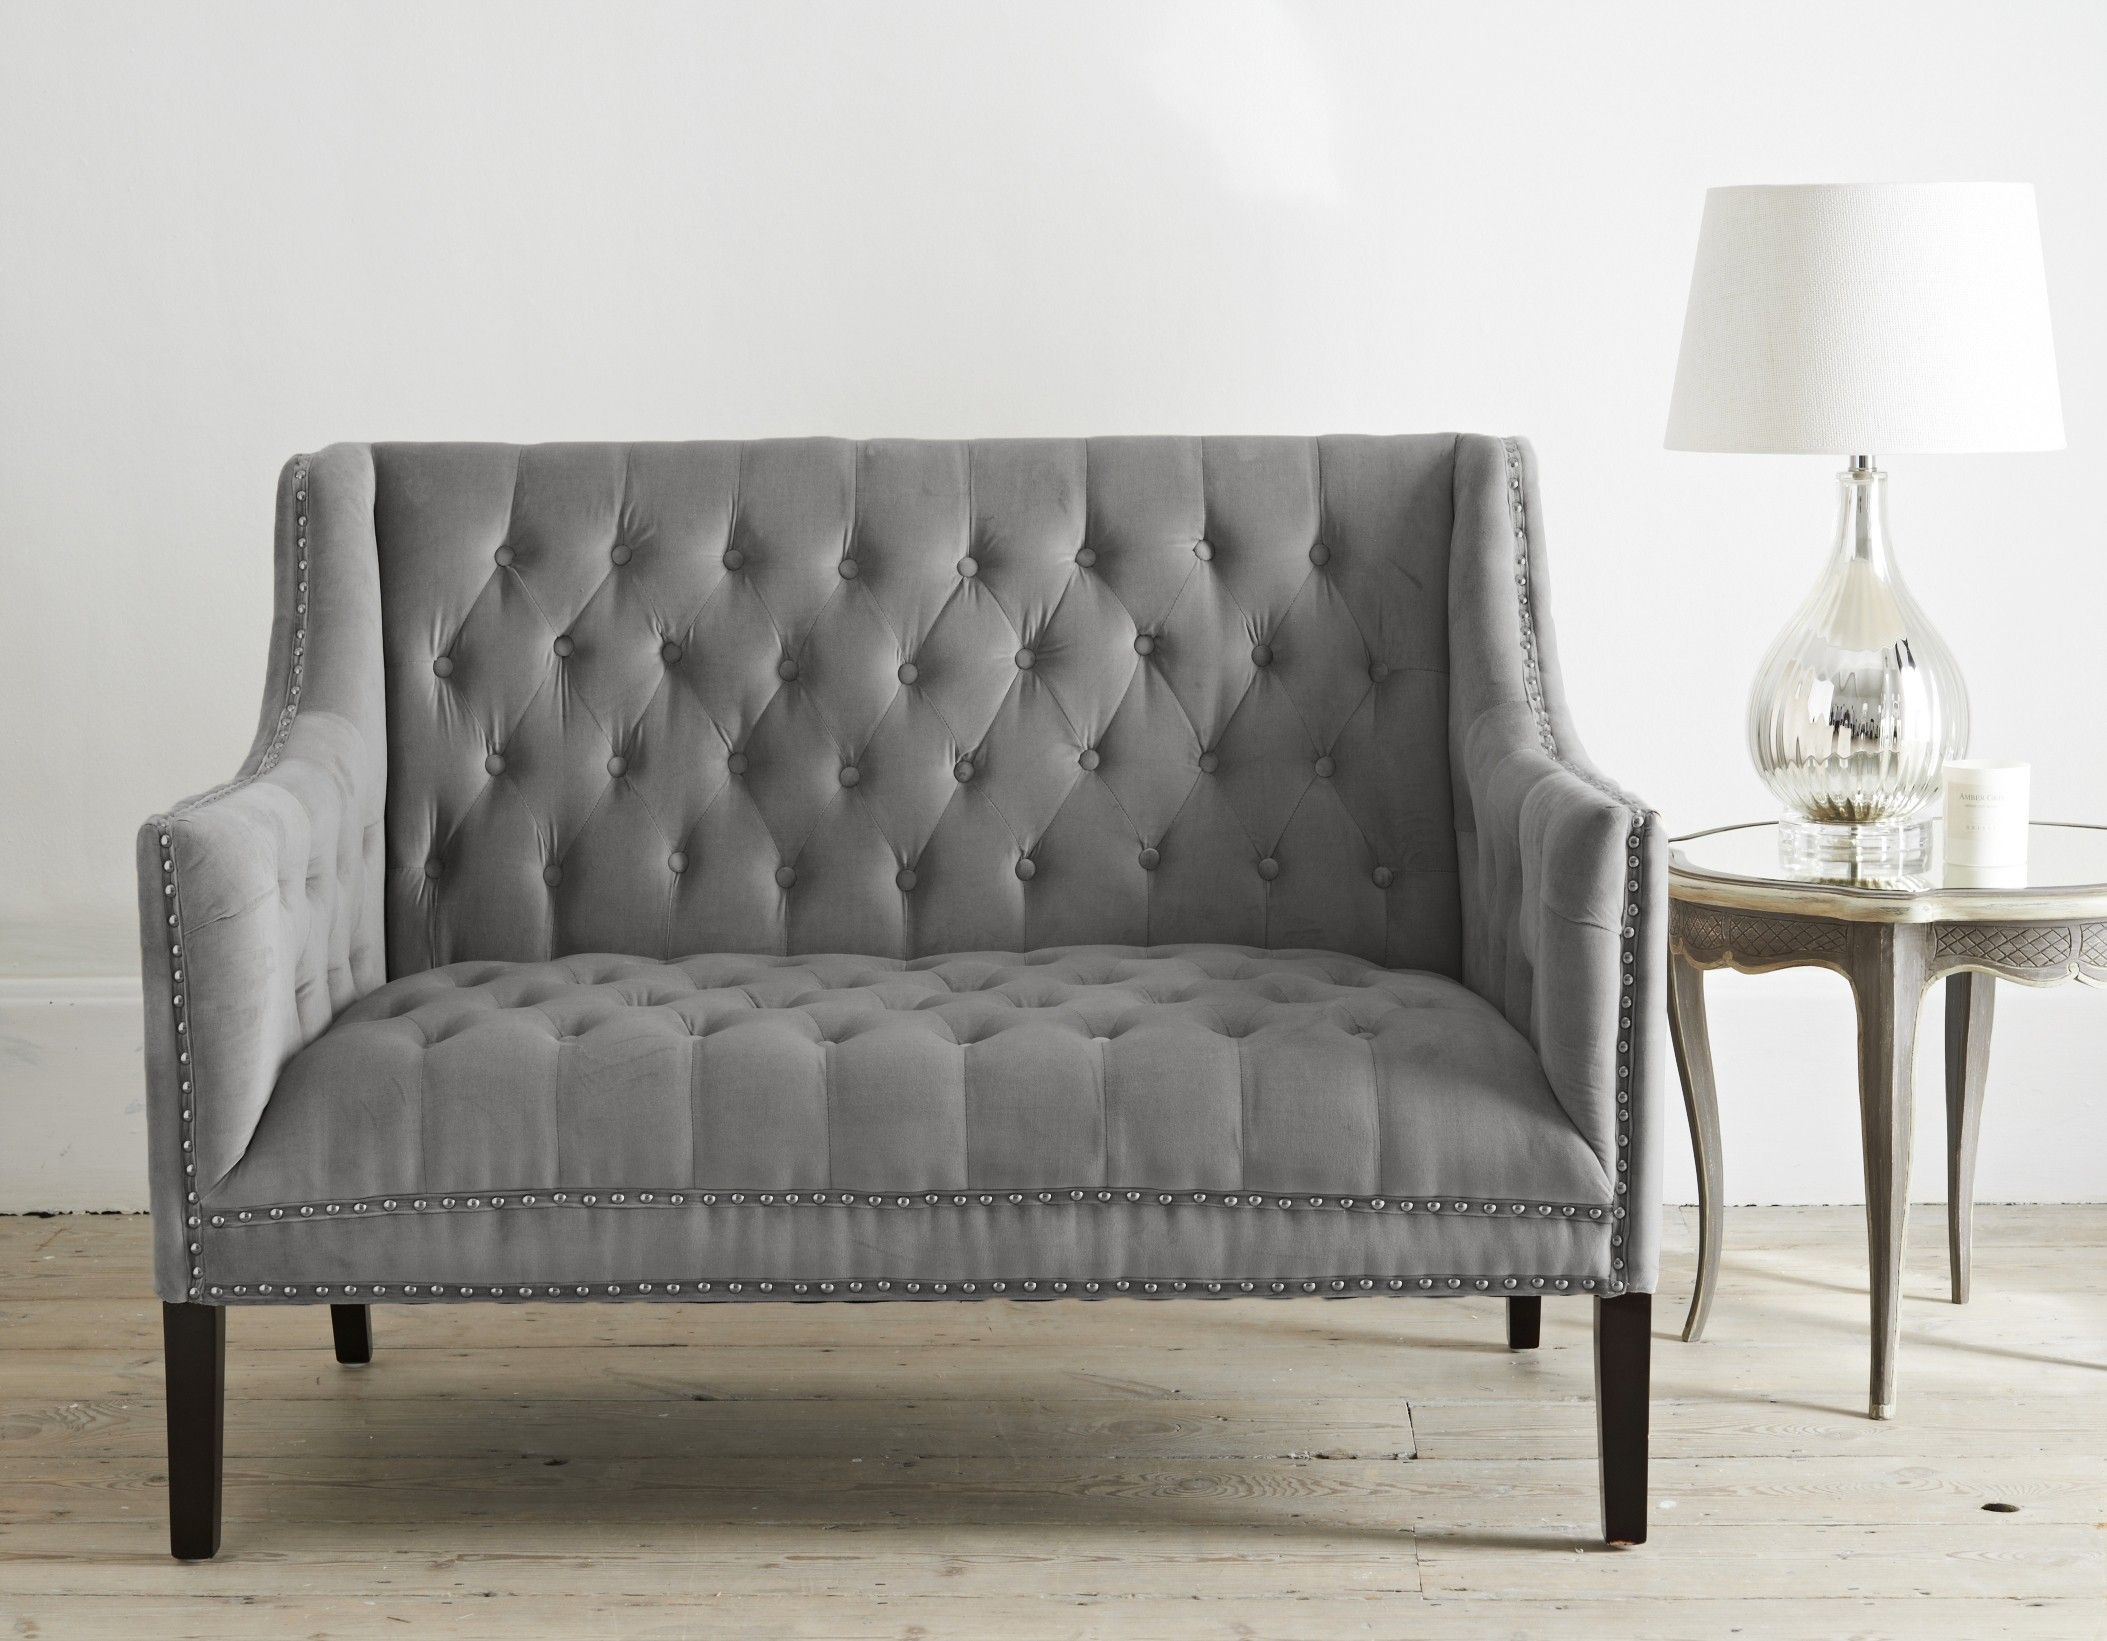 Sophisticated 2 Seater Sofa In Grey Velvet Upholstery With